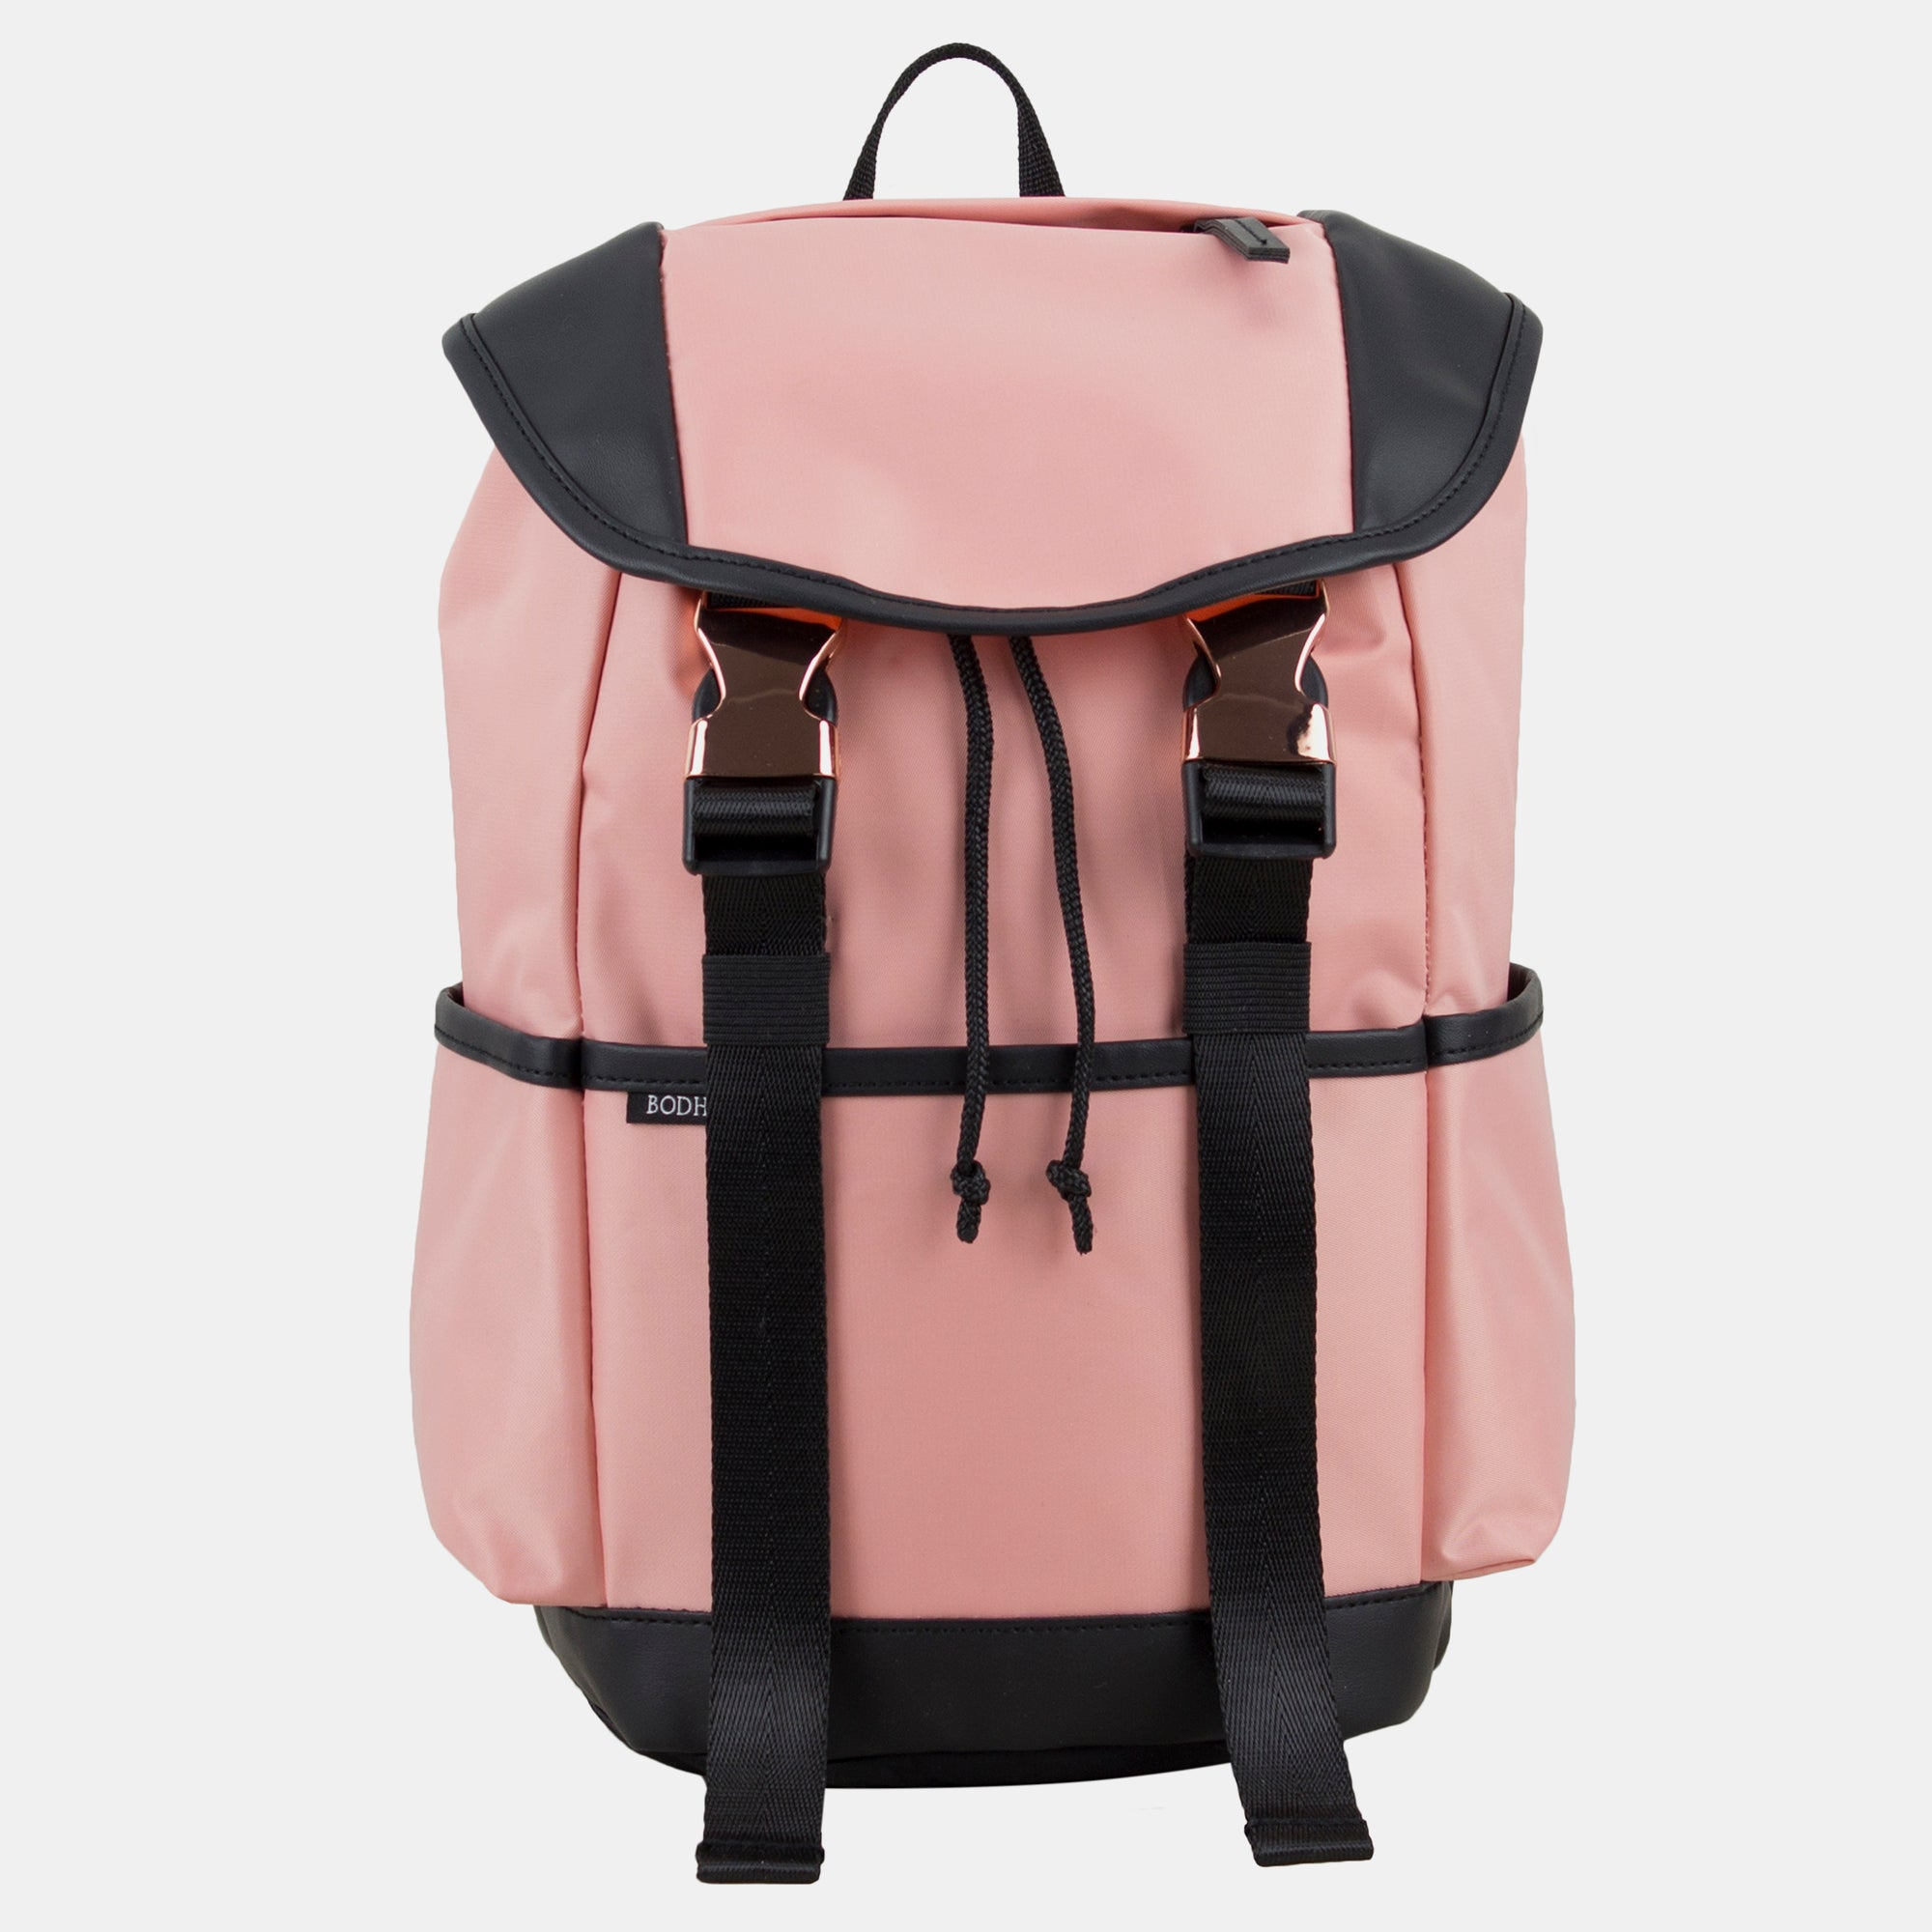 Bodhi Drawstring Backpack With Double Rose Gold Buckles